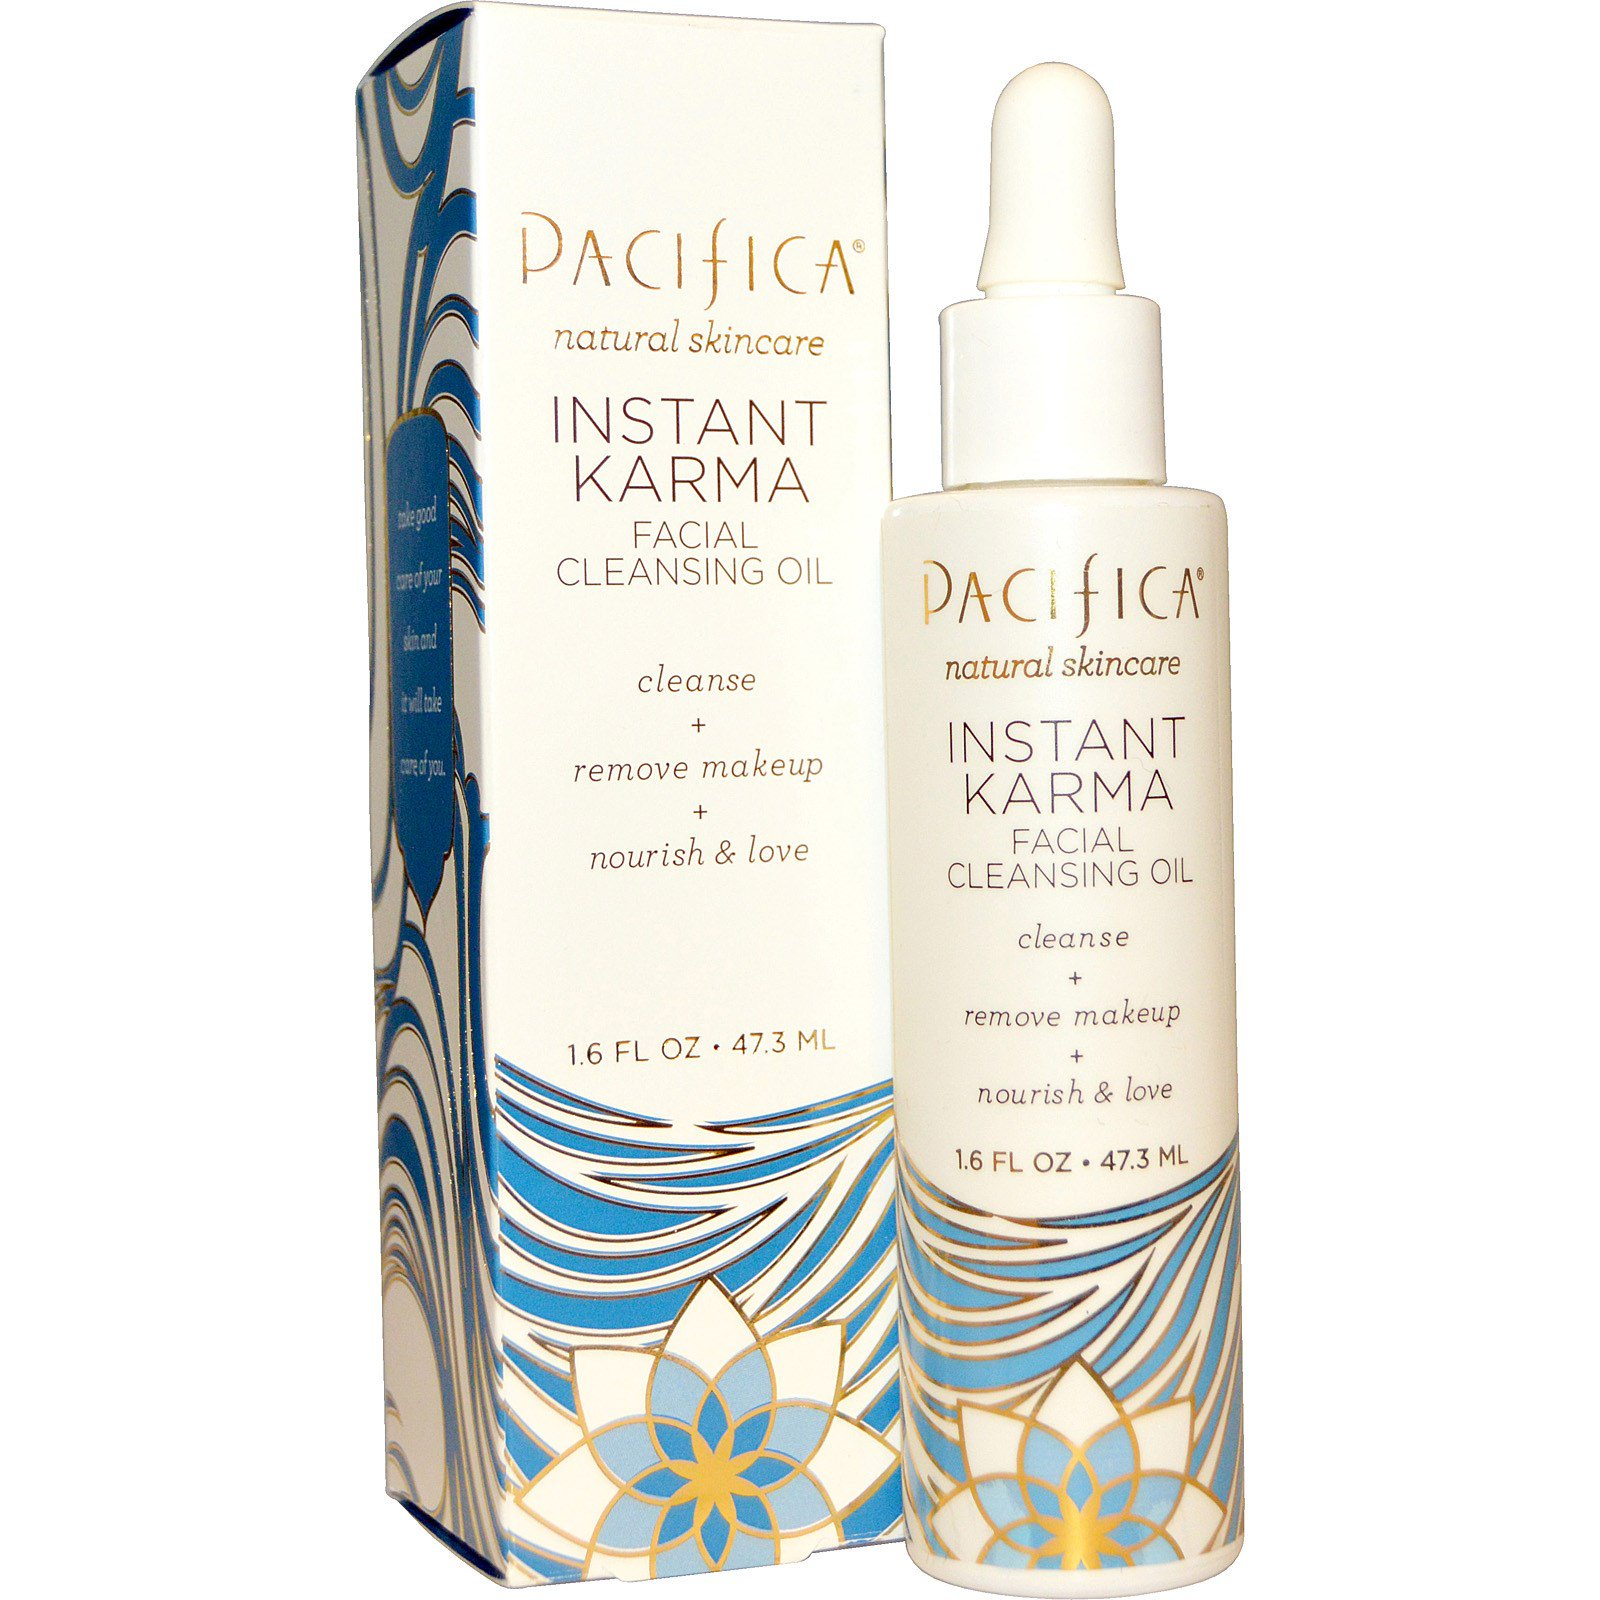 Pacifica, Instant Karma, Facial Cleansing Oil, 1.6 fl oz (47.3 ml ...